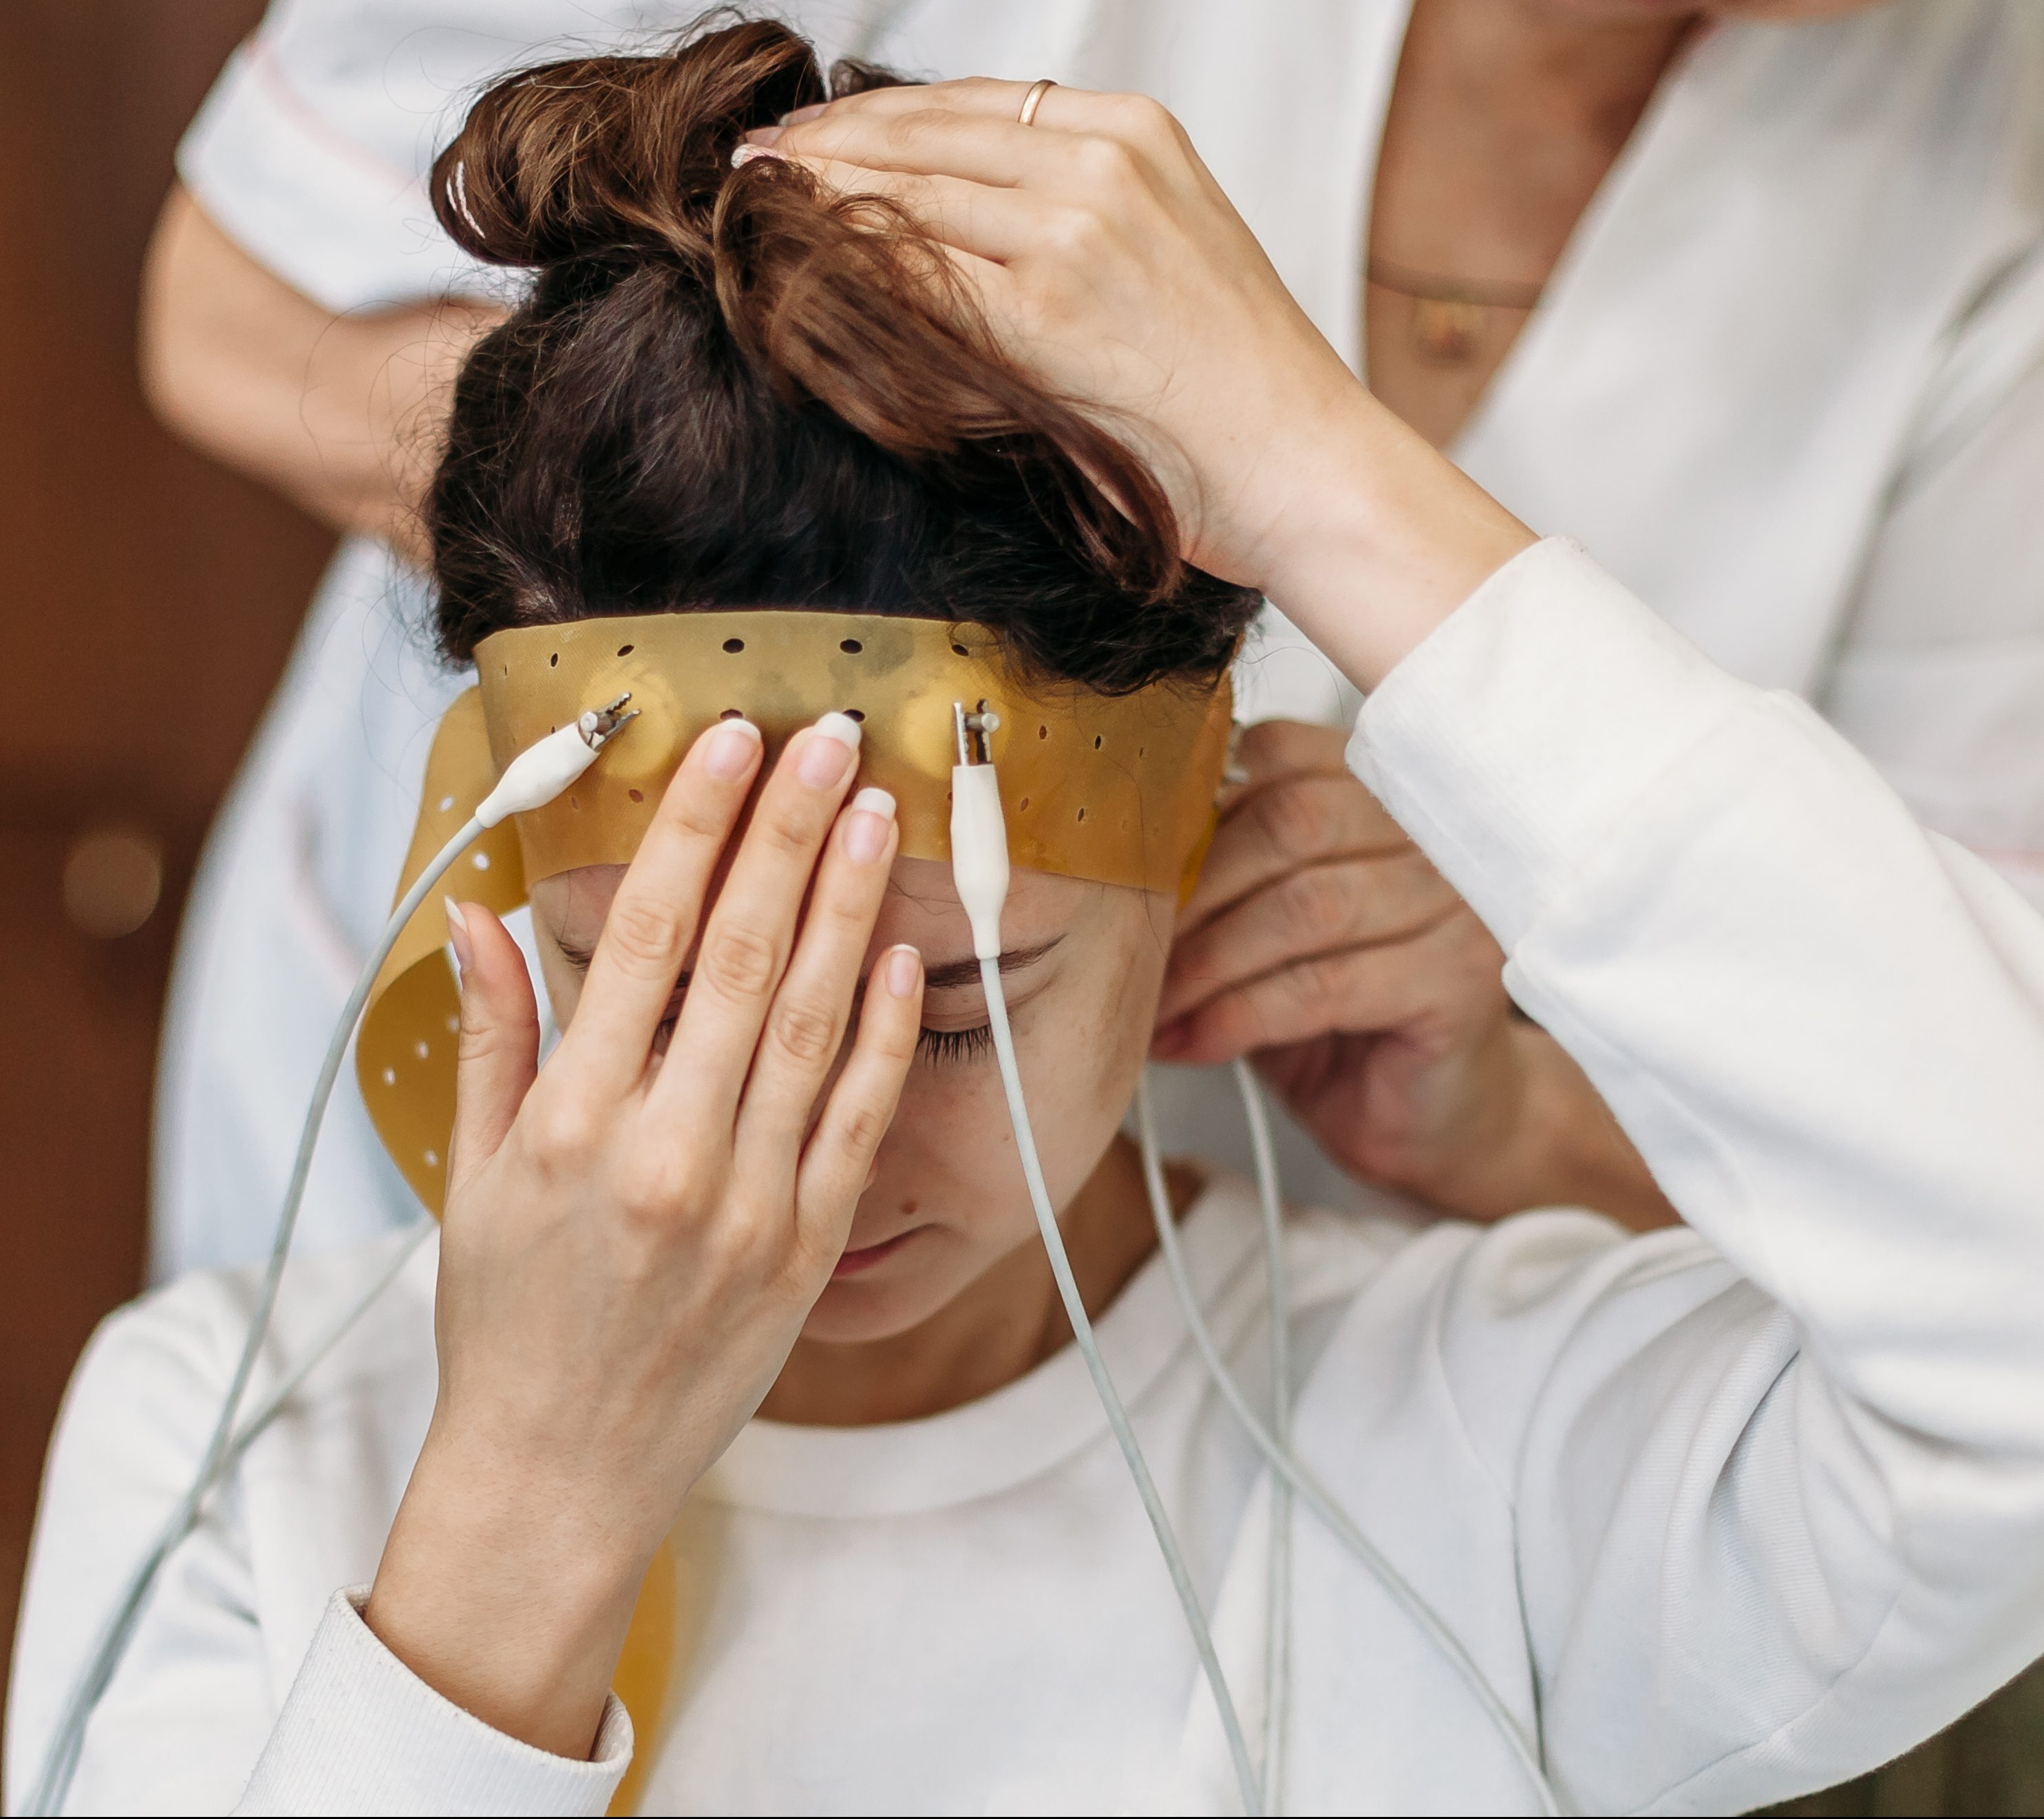 A young woman is sitting in a chair as a doctor dawns a silicone headband containing electrodes on her head.